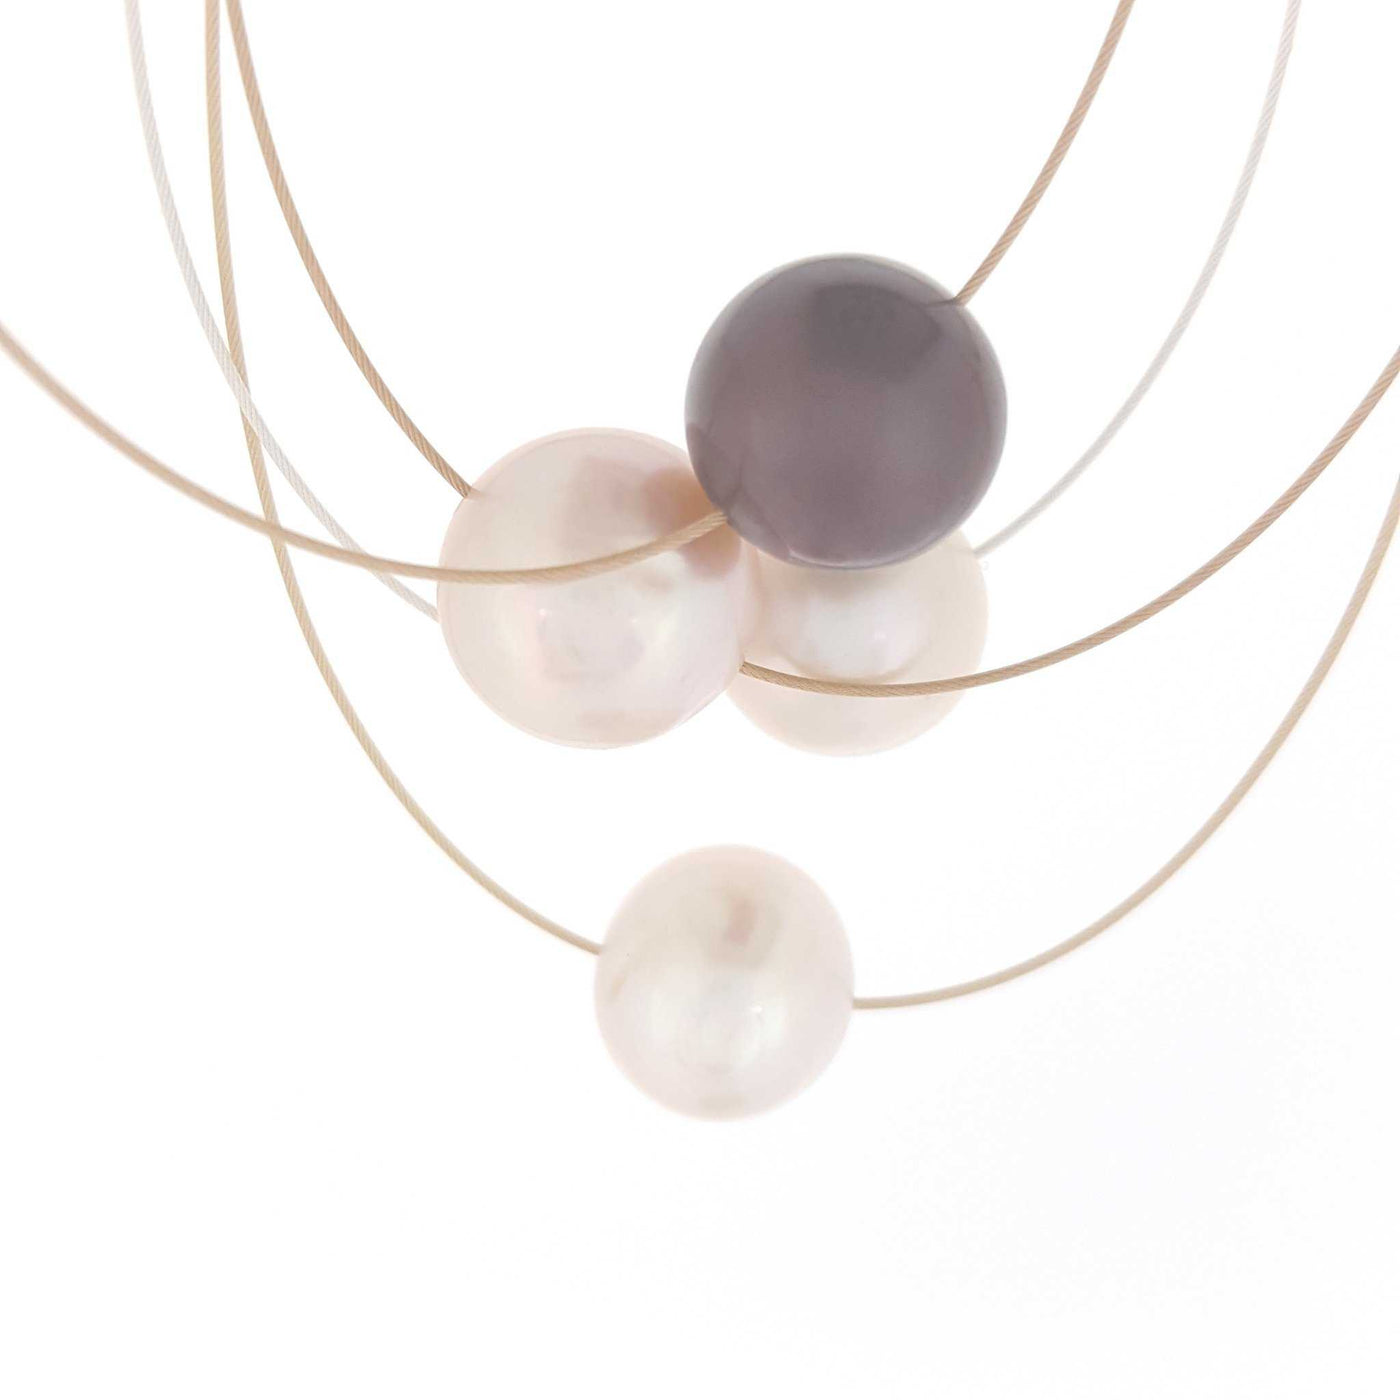 Pearl Necklace 'Single Pearl' - The Courthouse Collection